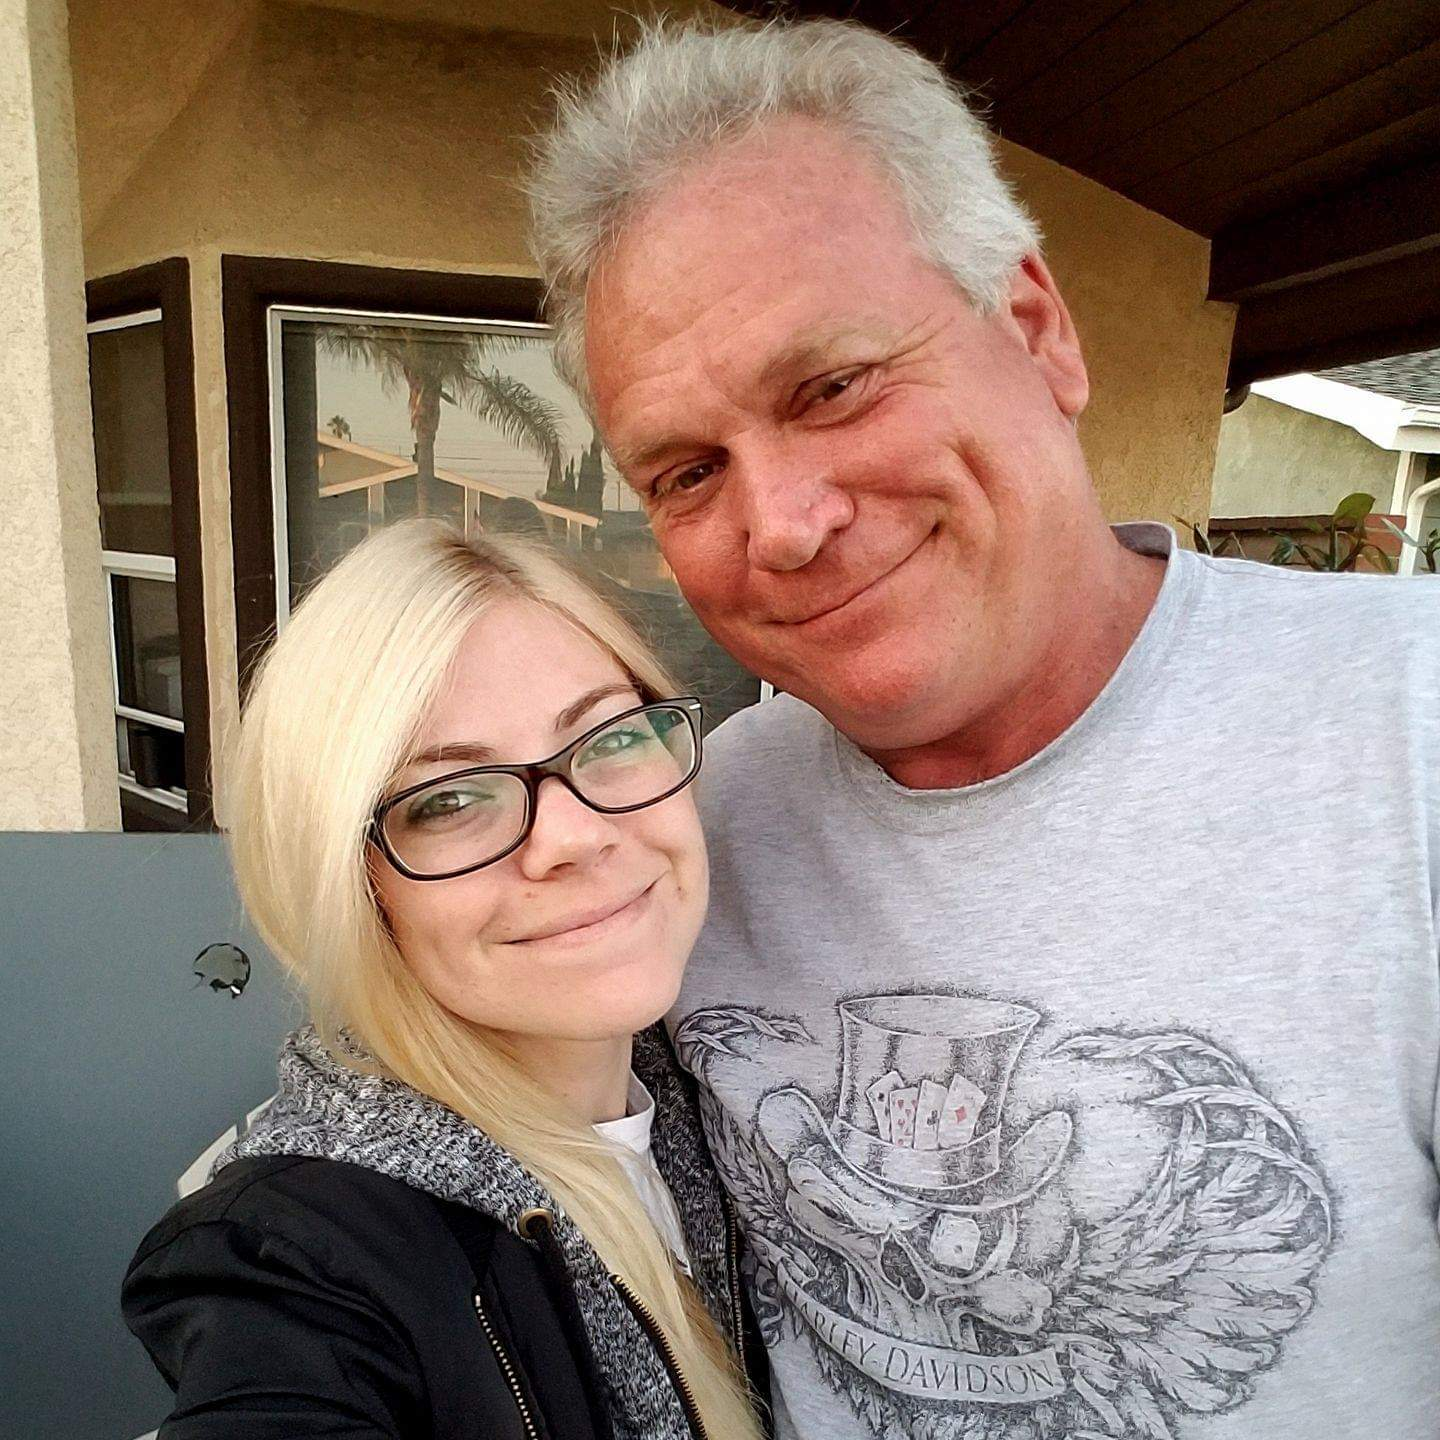 Couple Defies All Odds And Says They Are In A Healthy And Happy Relationship Despite The Age Gap Of 33 Years